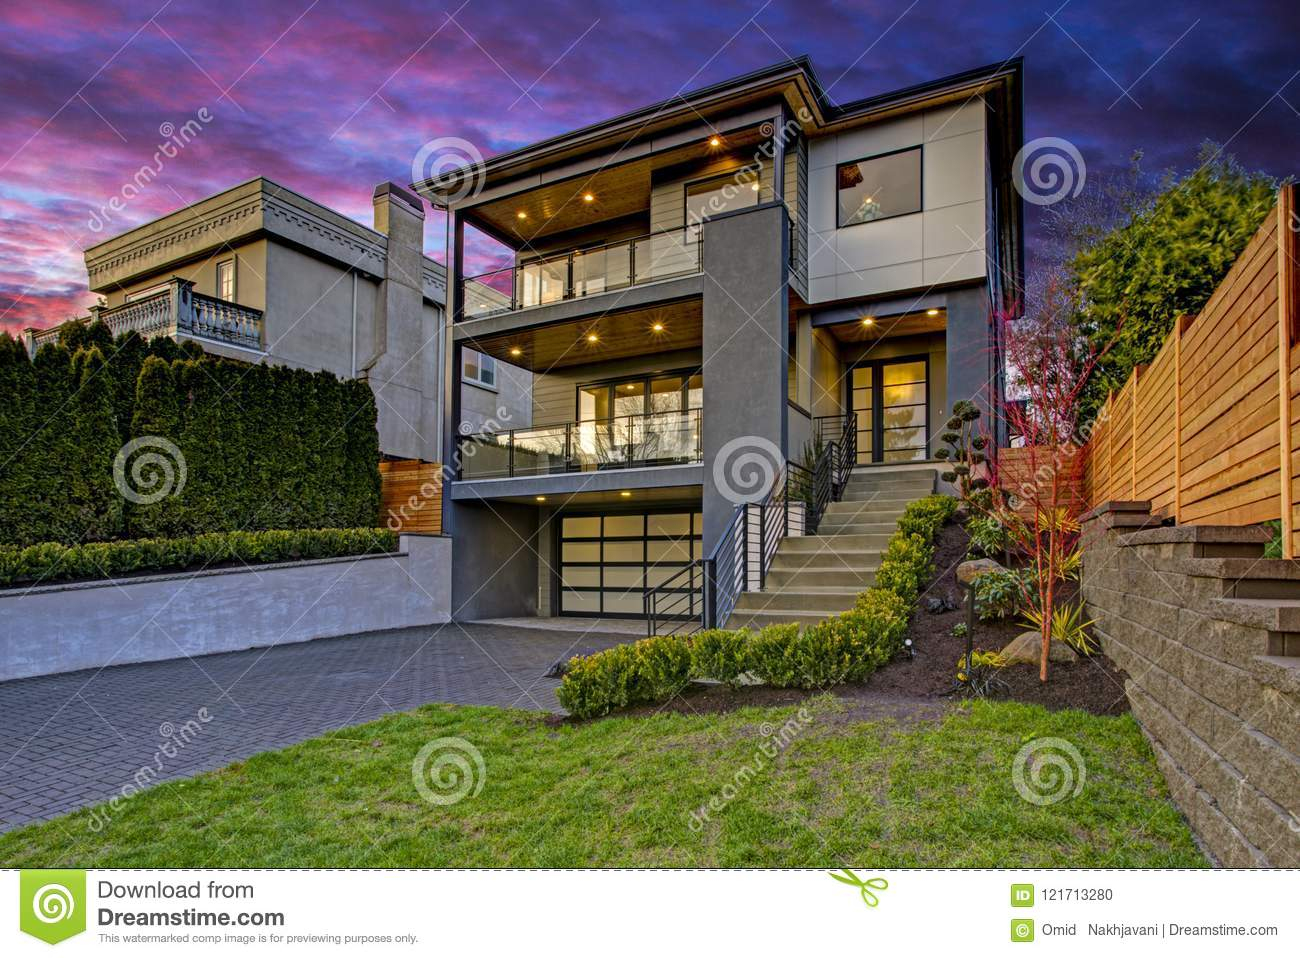 Luxury Modern Home Exterior At Sunset Stock Photo Image Of Large Kirkland 121713280